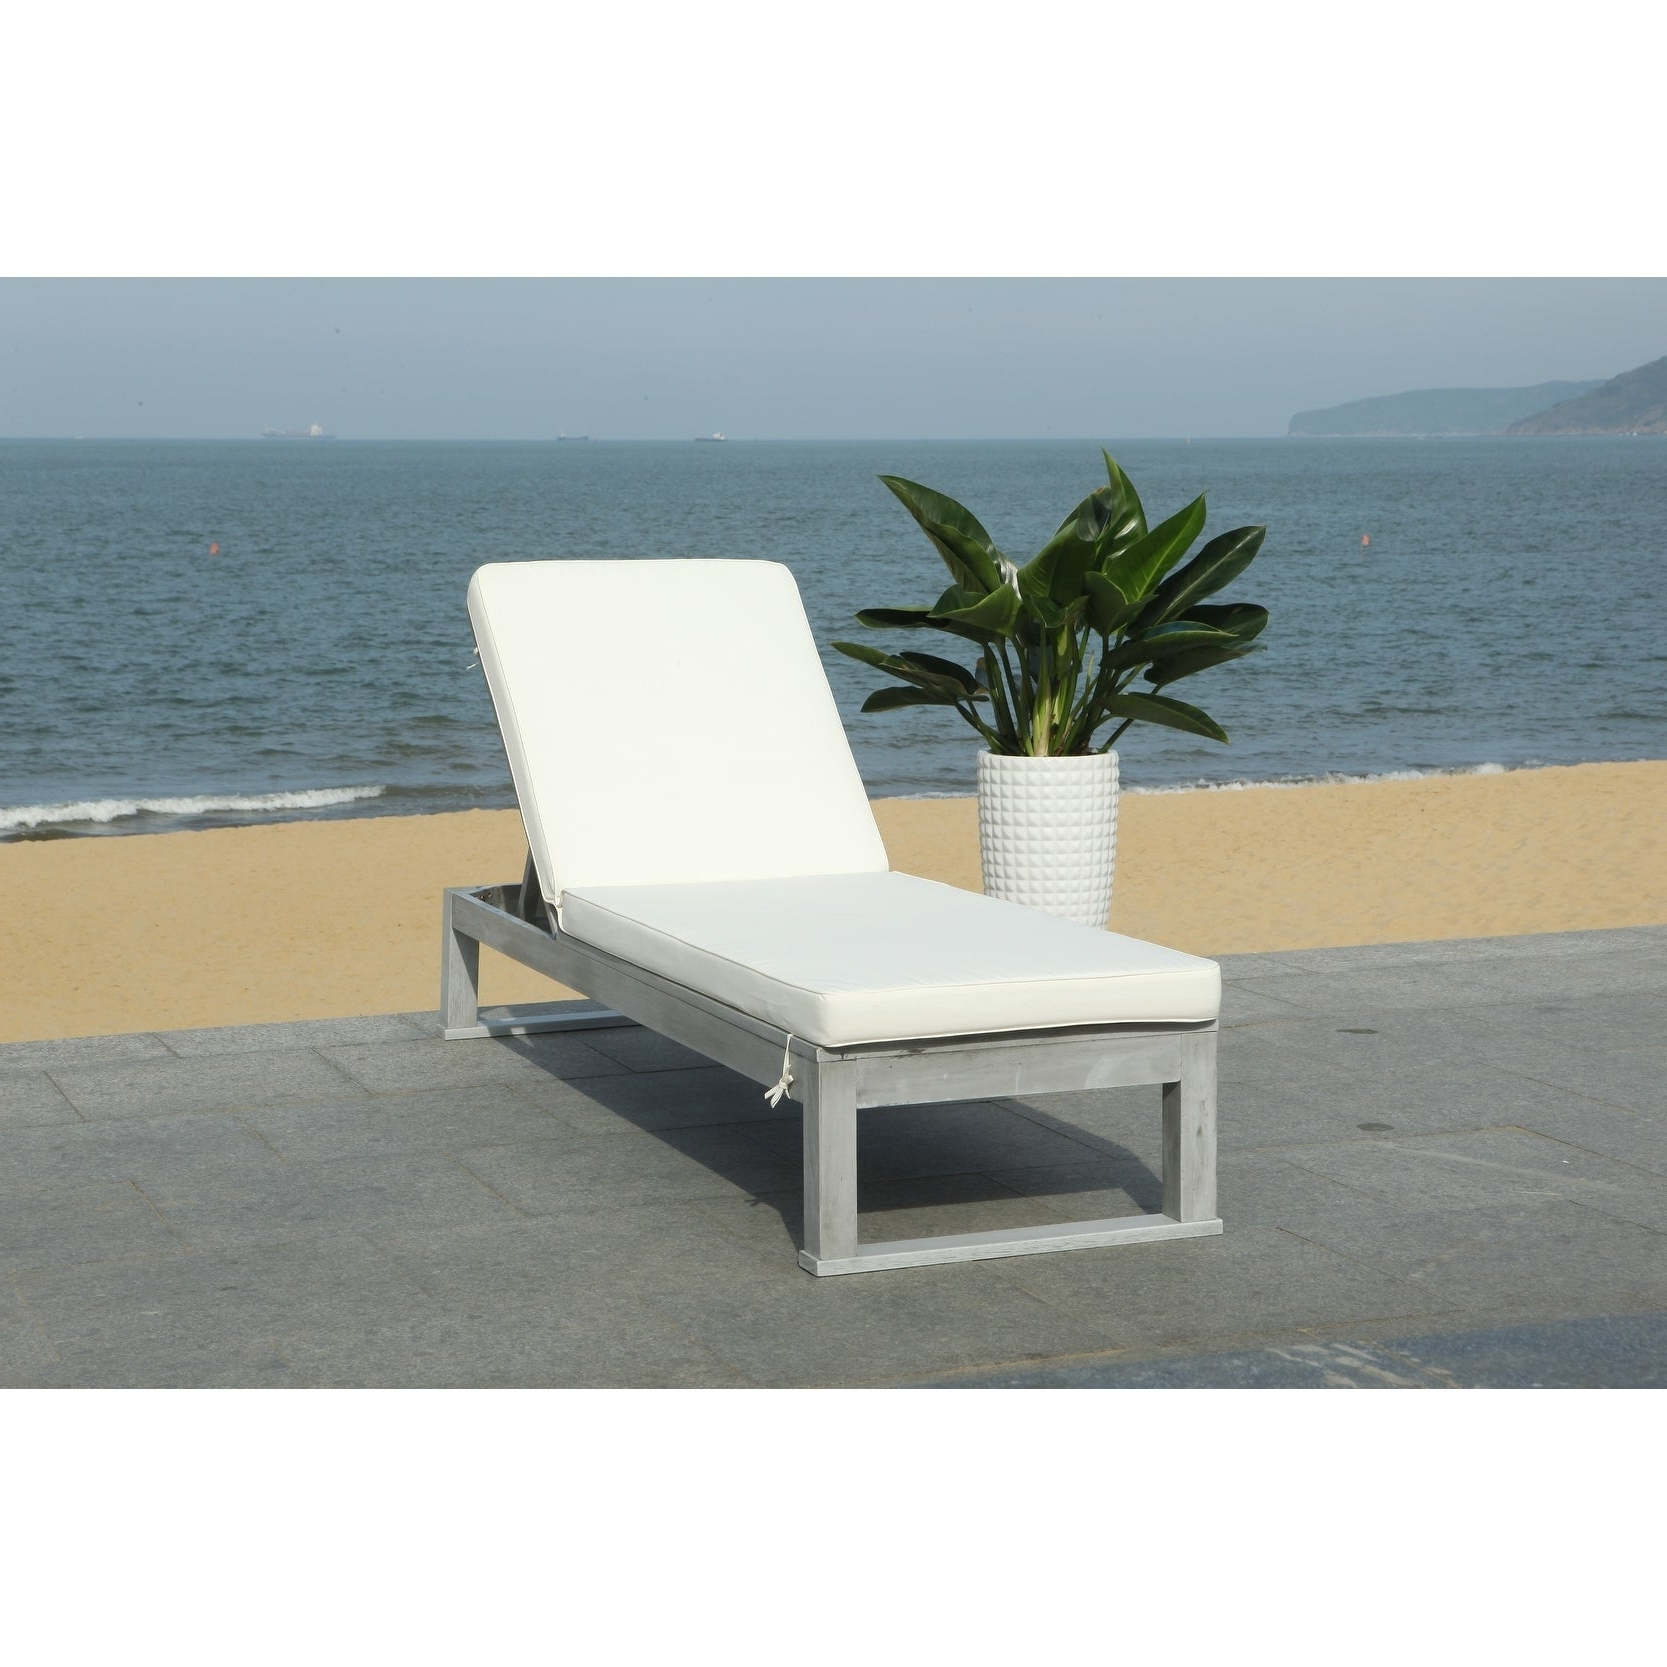 "Most Current Outdoor Living Azusa Sunloungers Pertaining To Safavieh Outdoor Living Solano Sunlounger Grey / White – 24.8"" X 80.9"" X (View 15 of 25)"